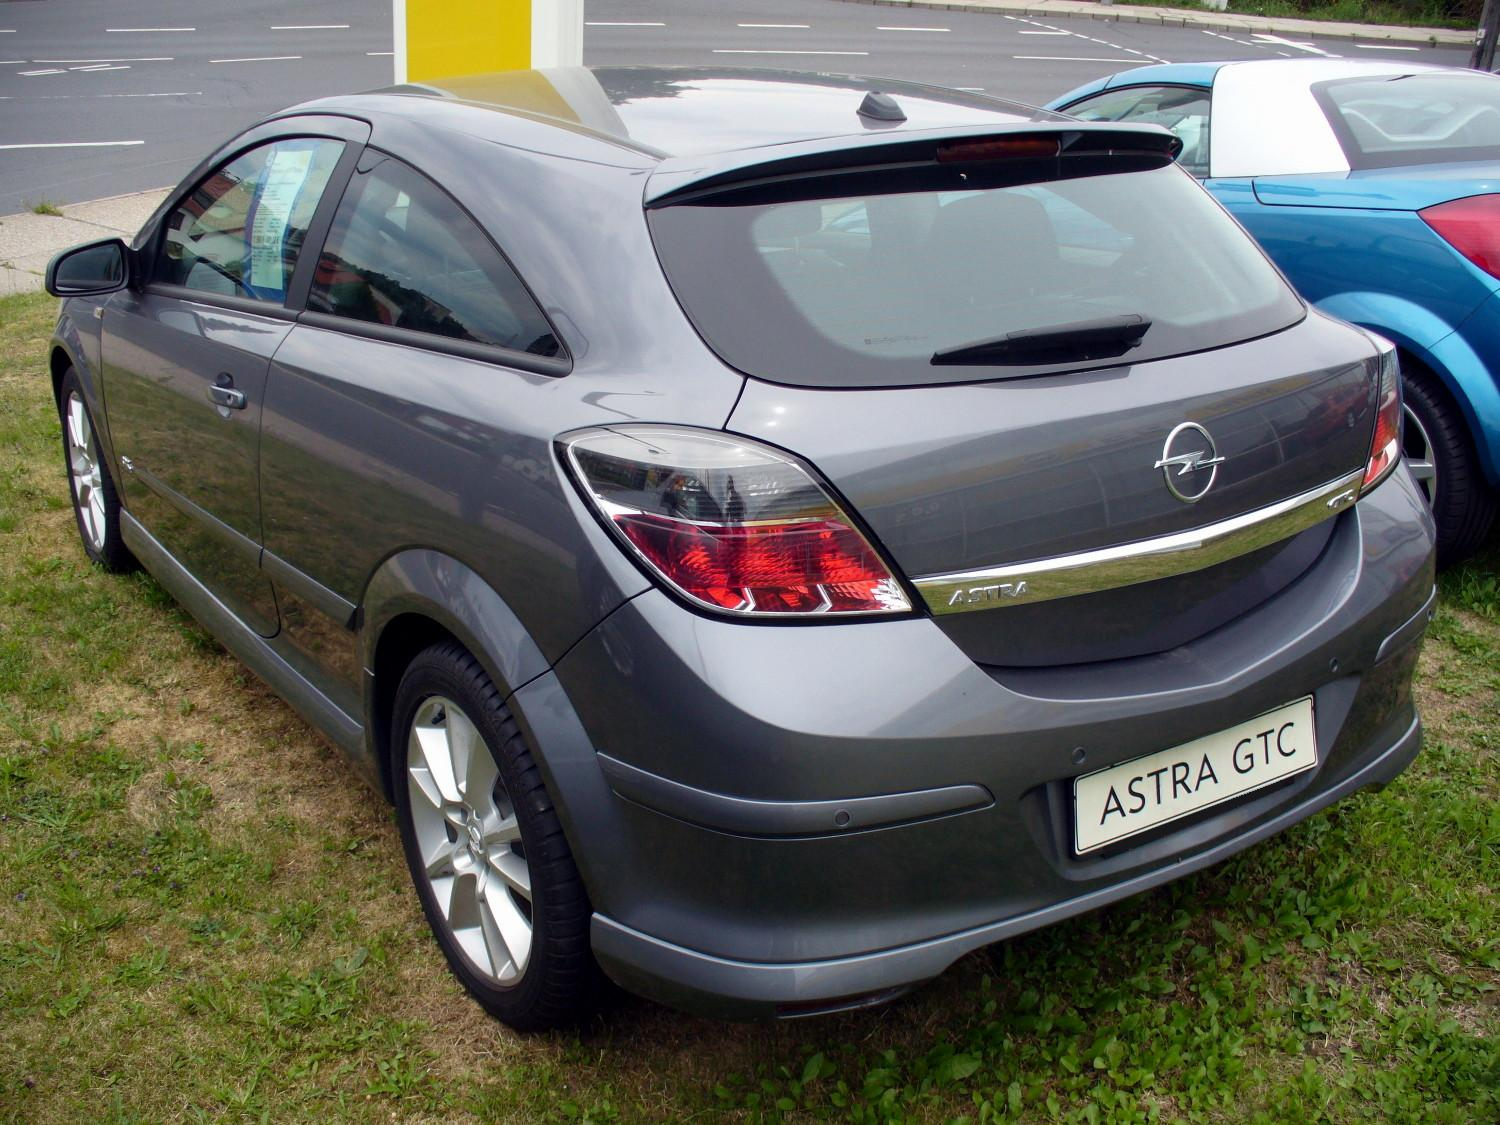 Opel astra edition (100 comments) Views 24627 Rating 1